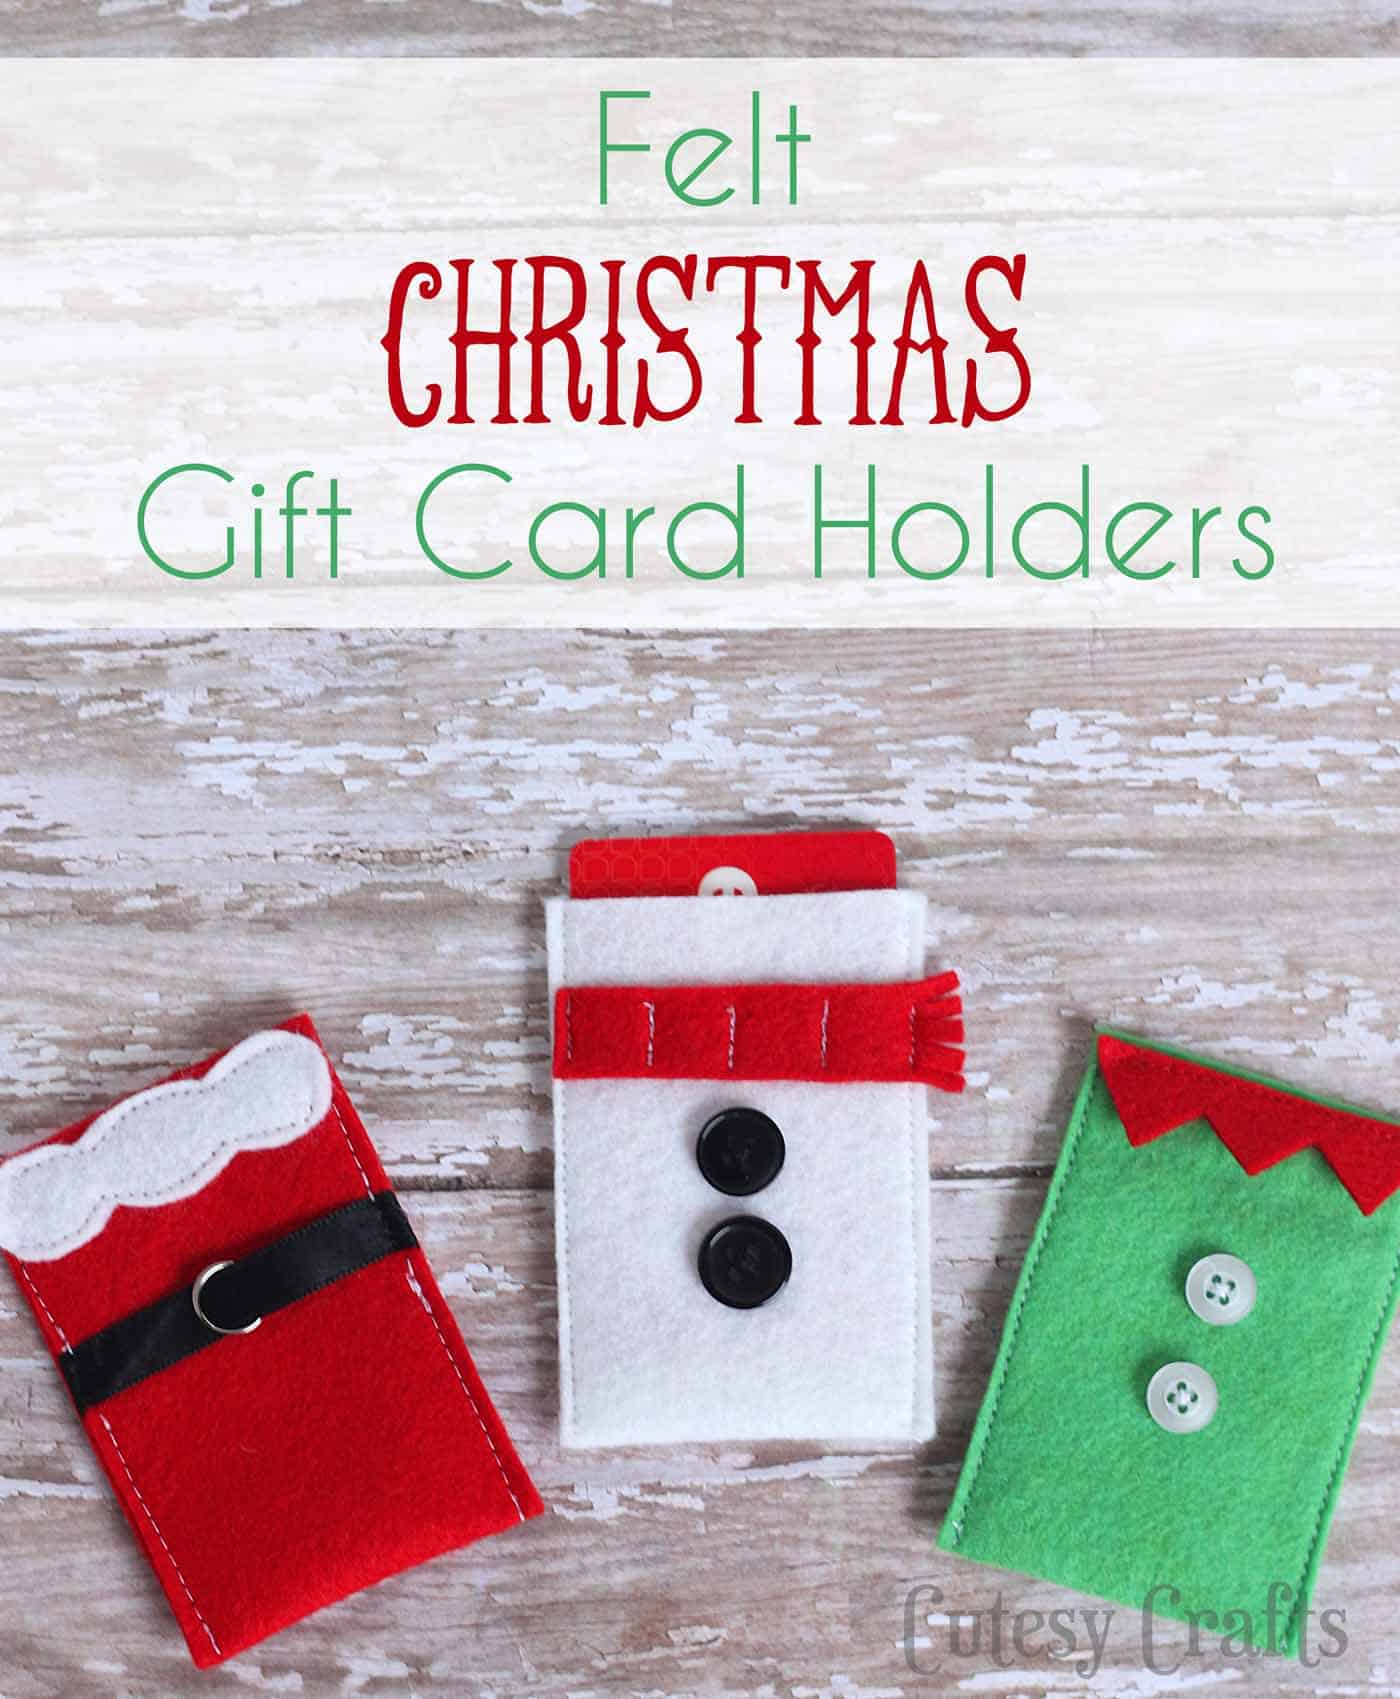 Felt Character Christmas Gift Card Holders